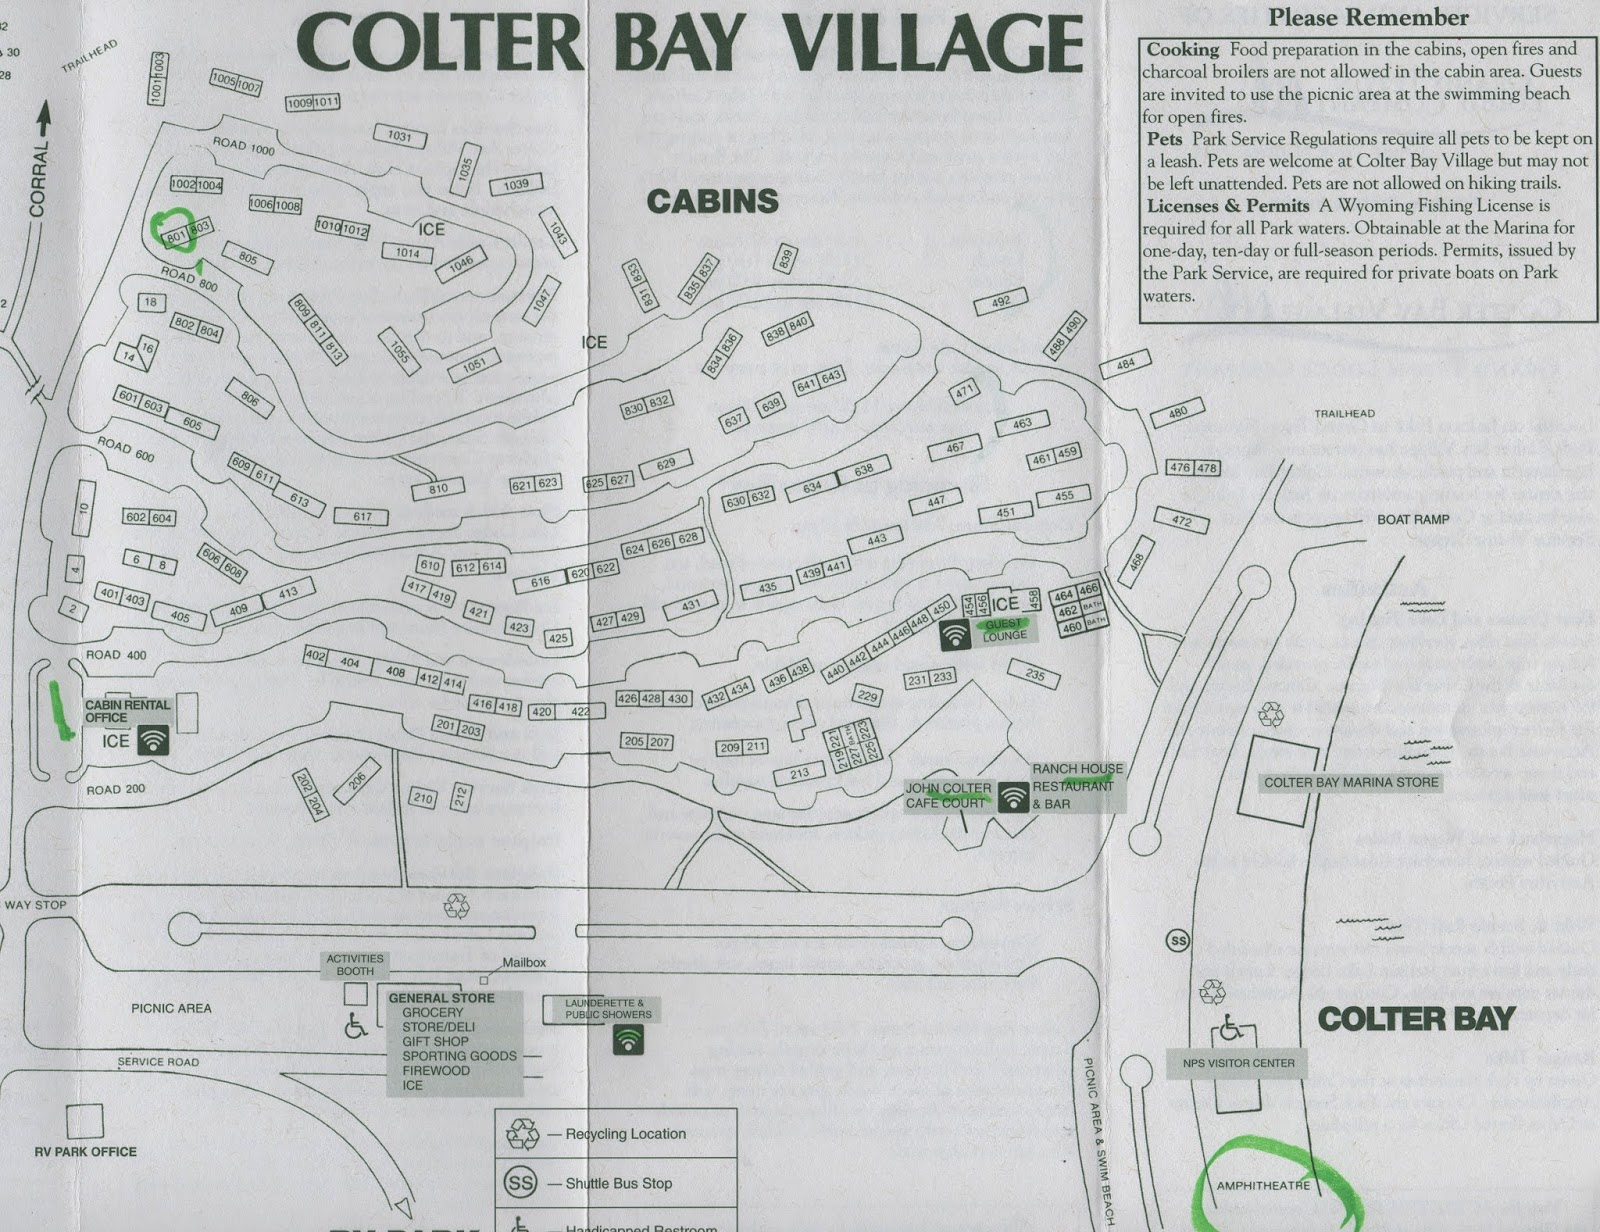 Map of Colter Bay Village